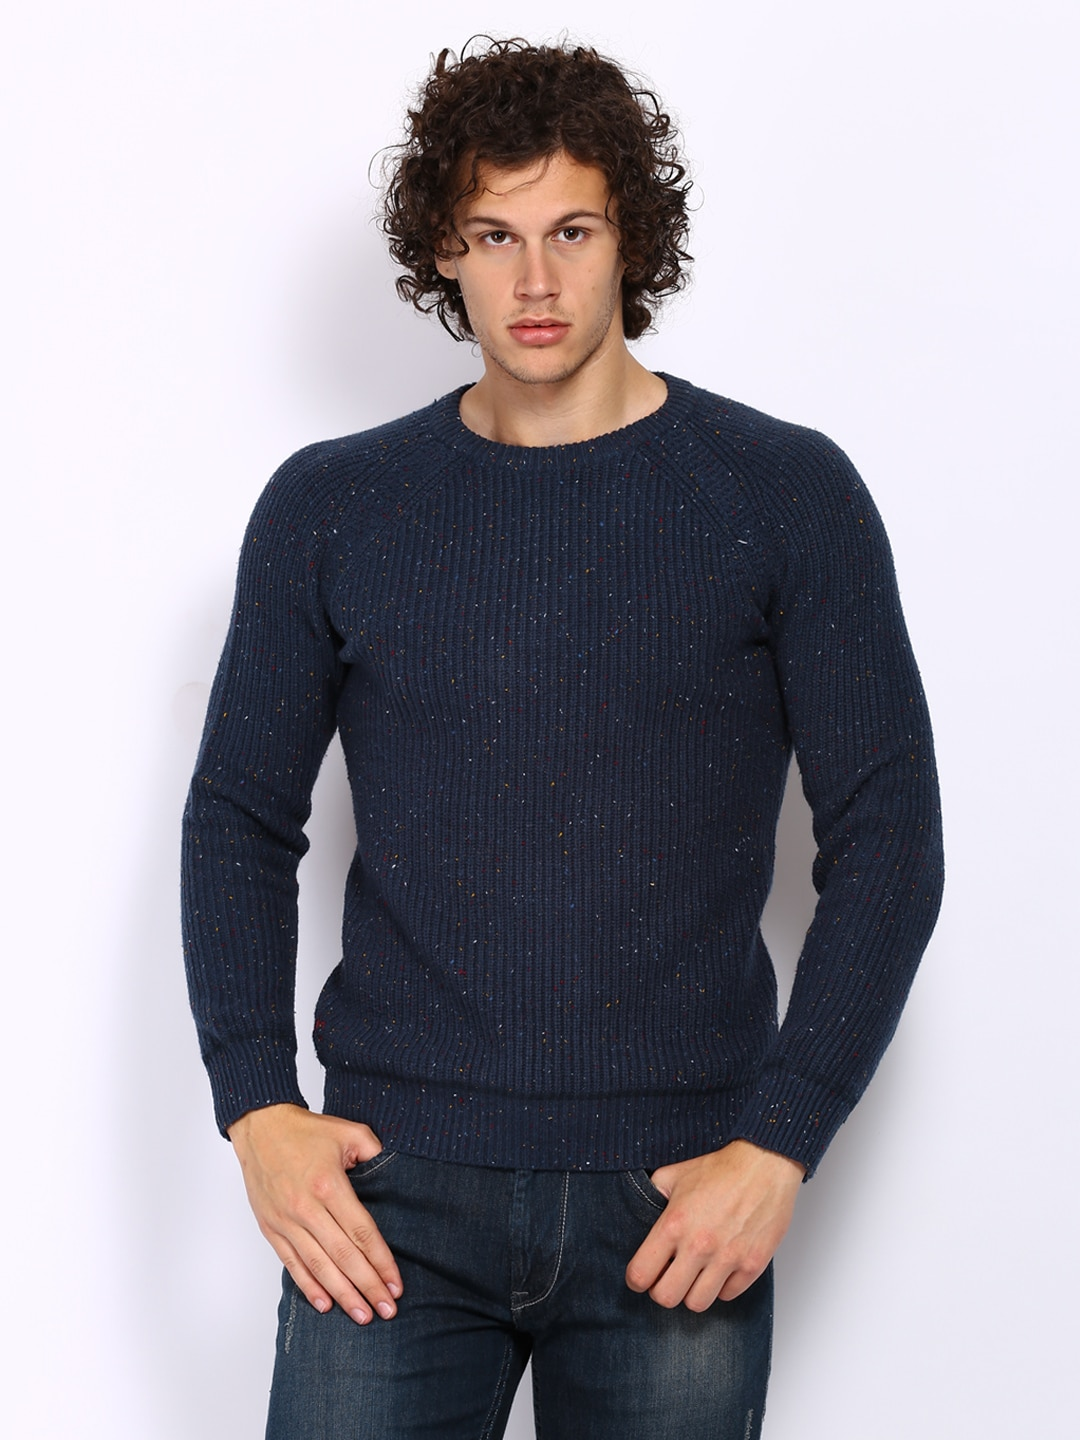 Find great deals on eBay for sweaters for men. Shop with confidence.